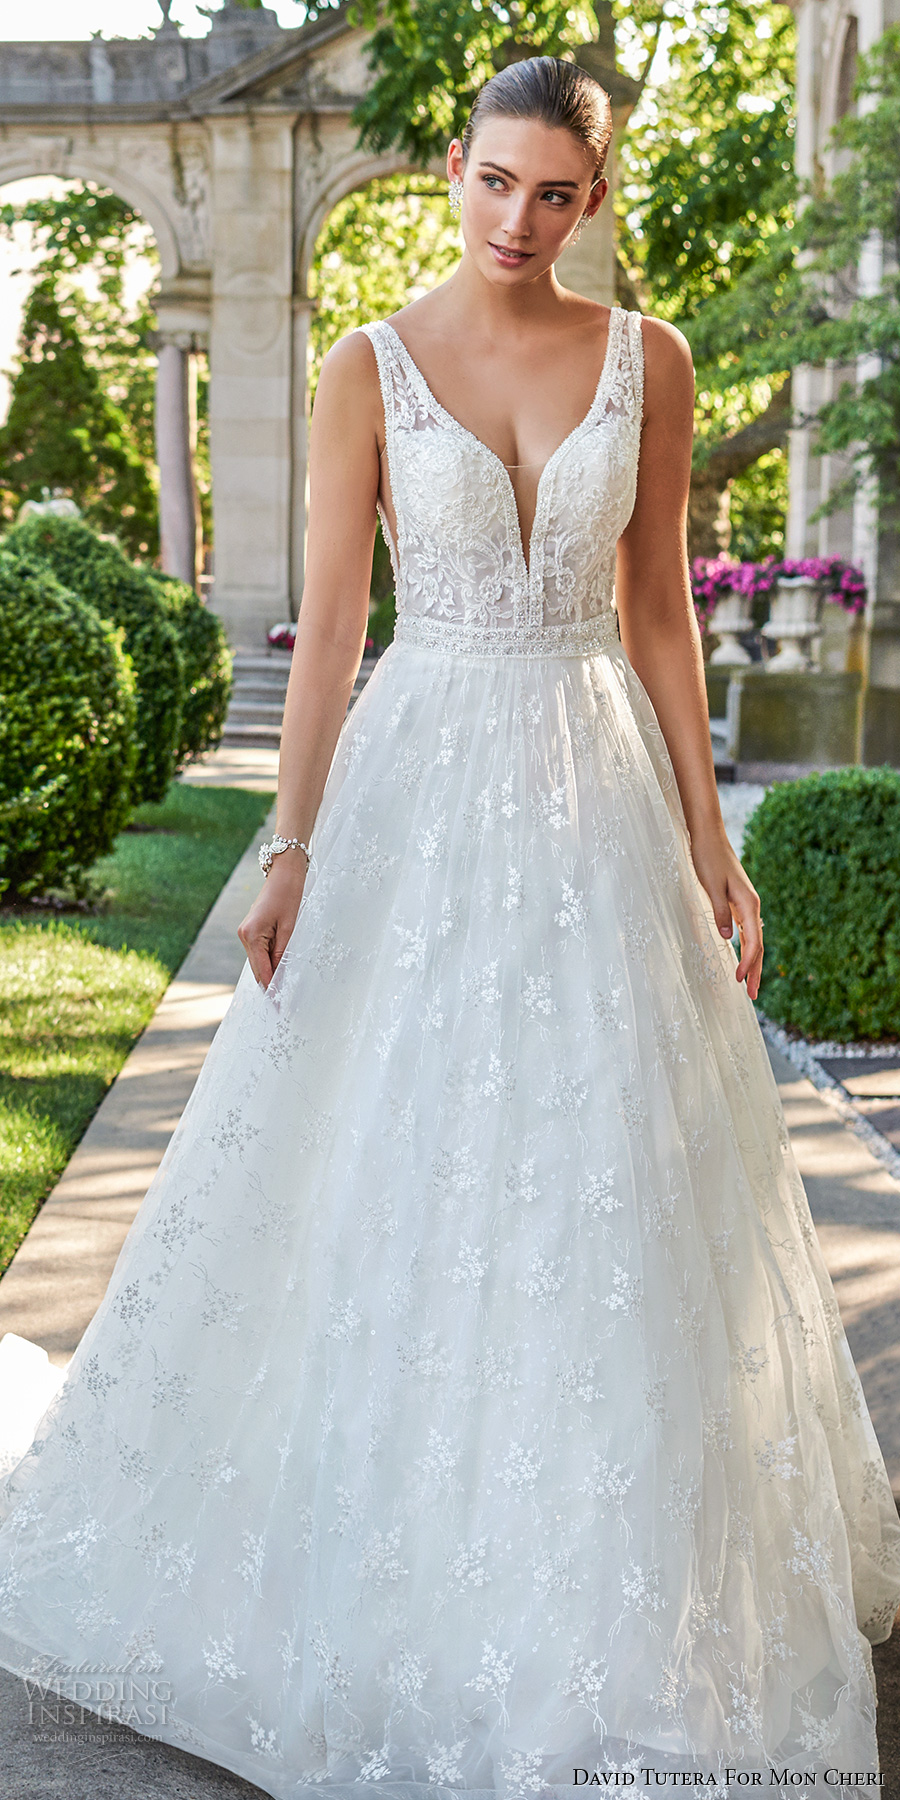 Awesome Open Back Wedding Dresses Images - All Wedding Dresses ...